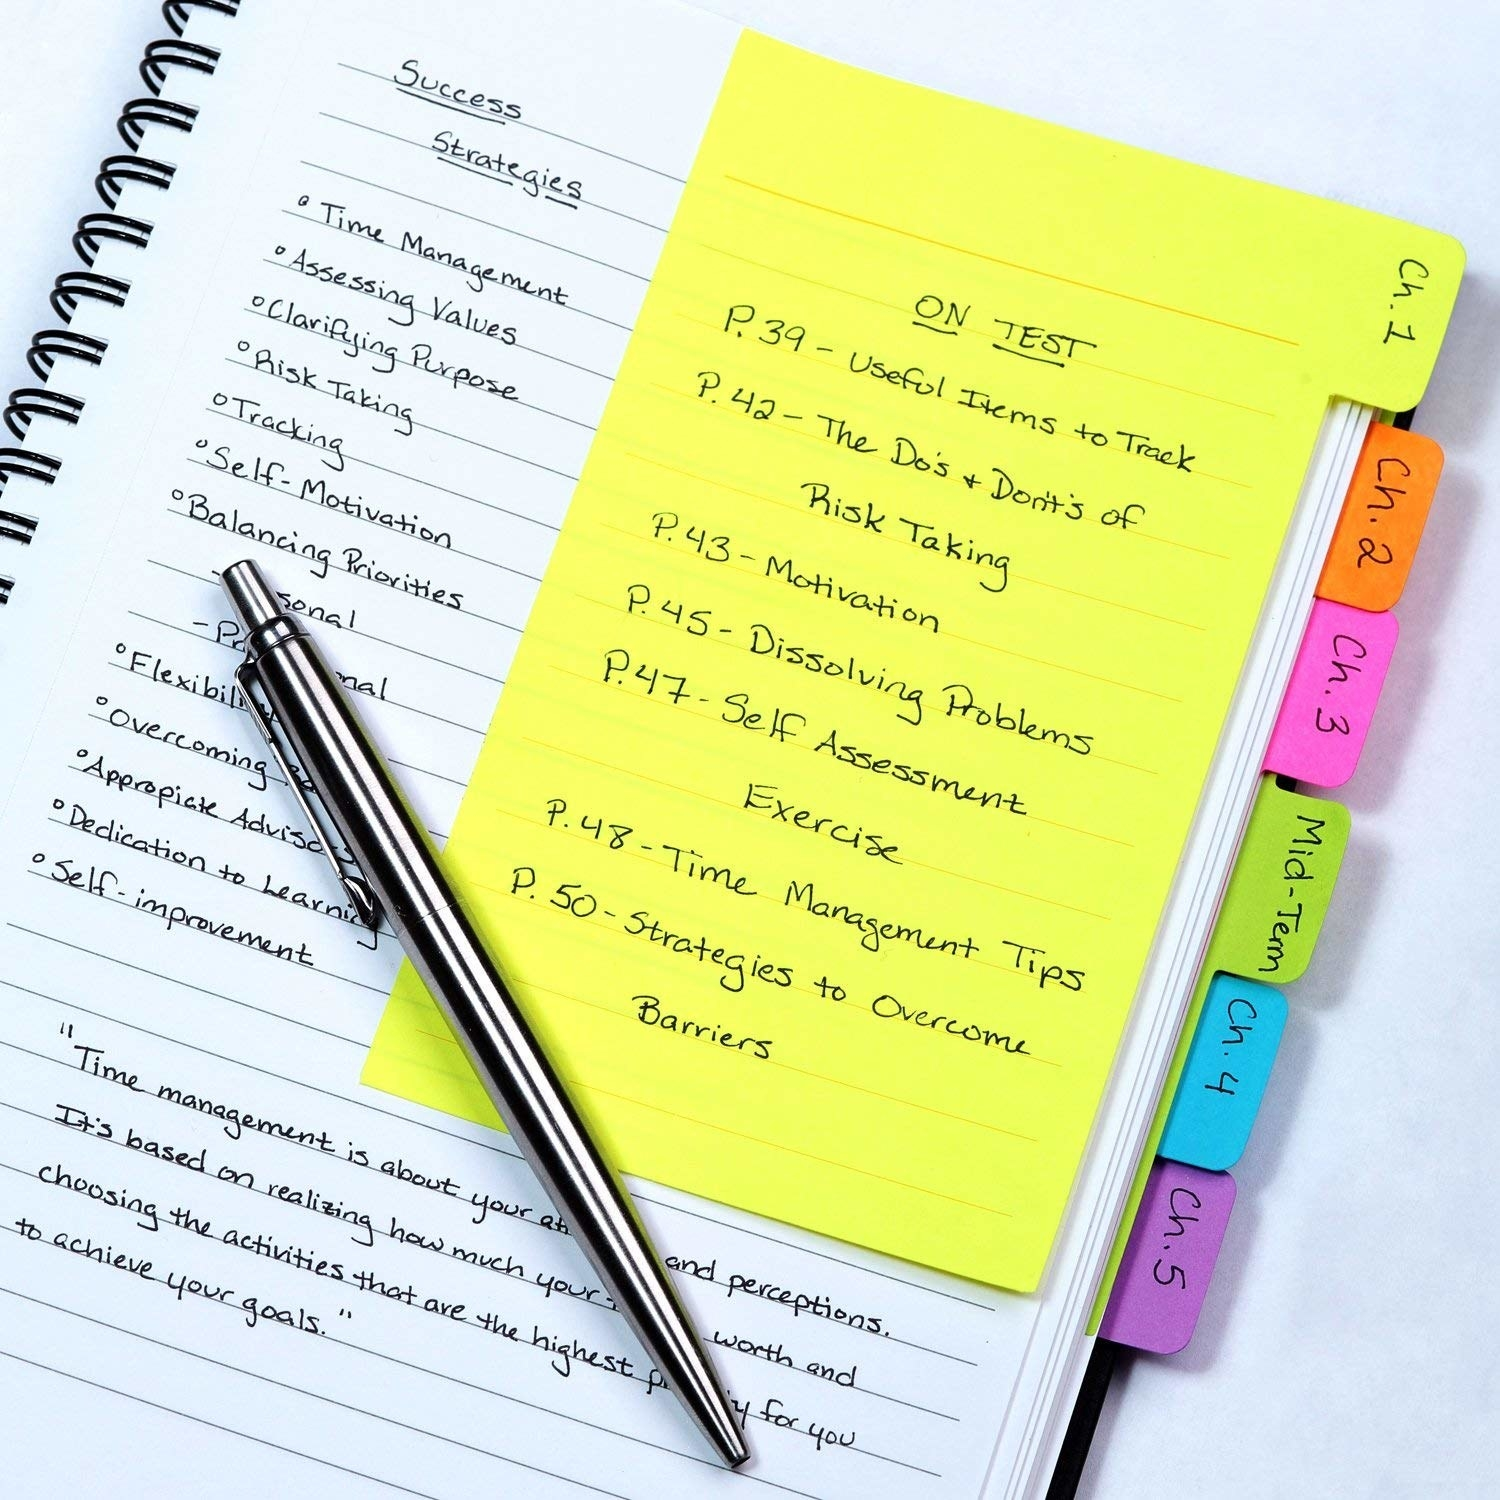 The sticky note placed in a notebook